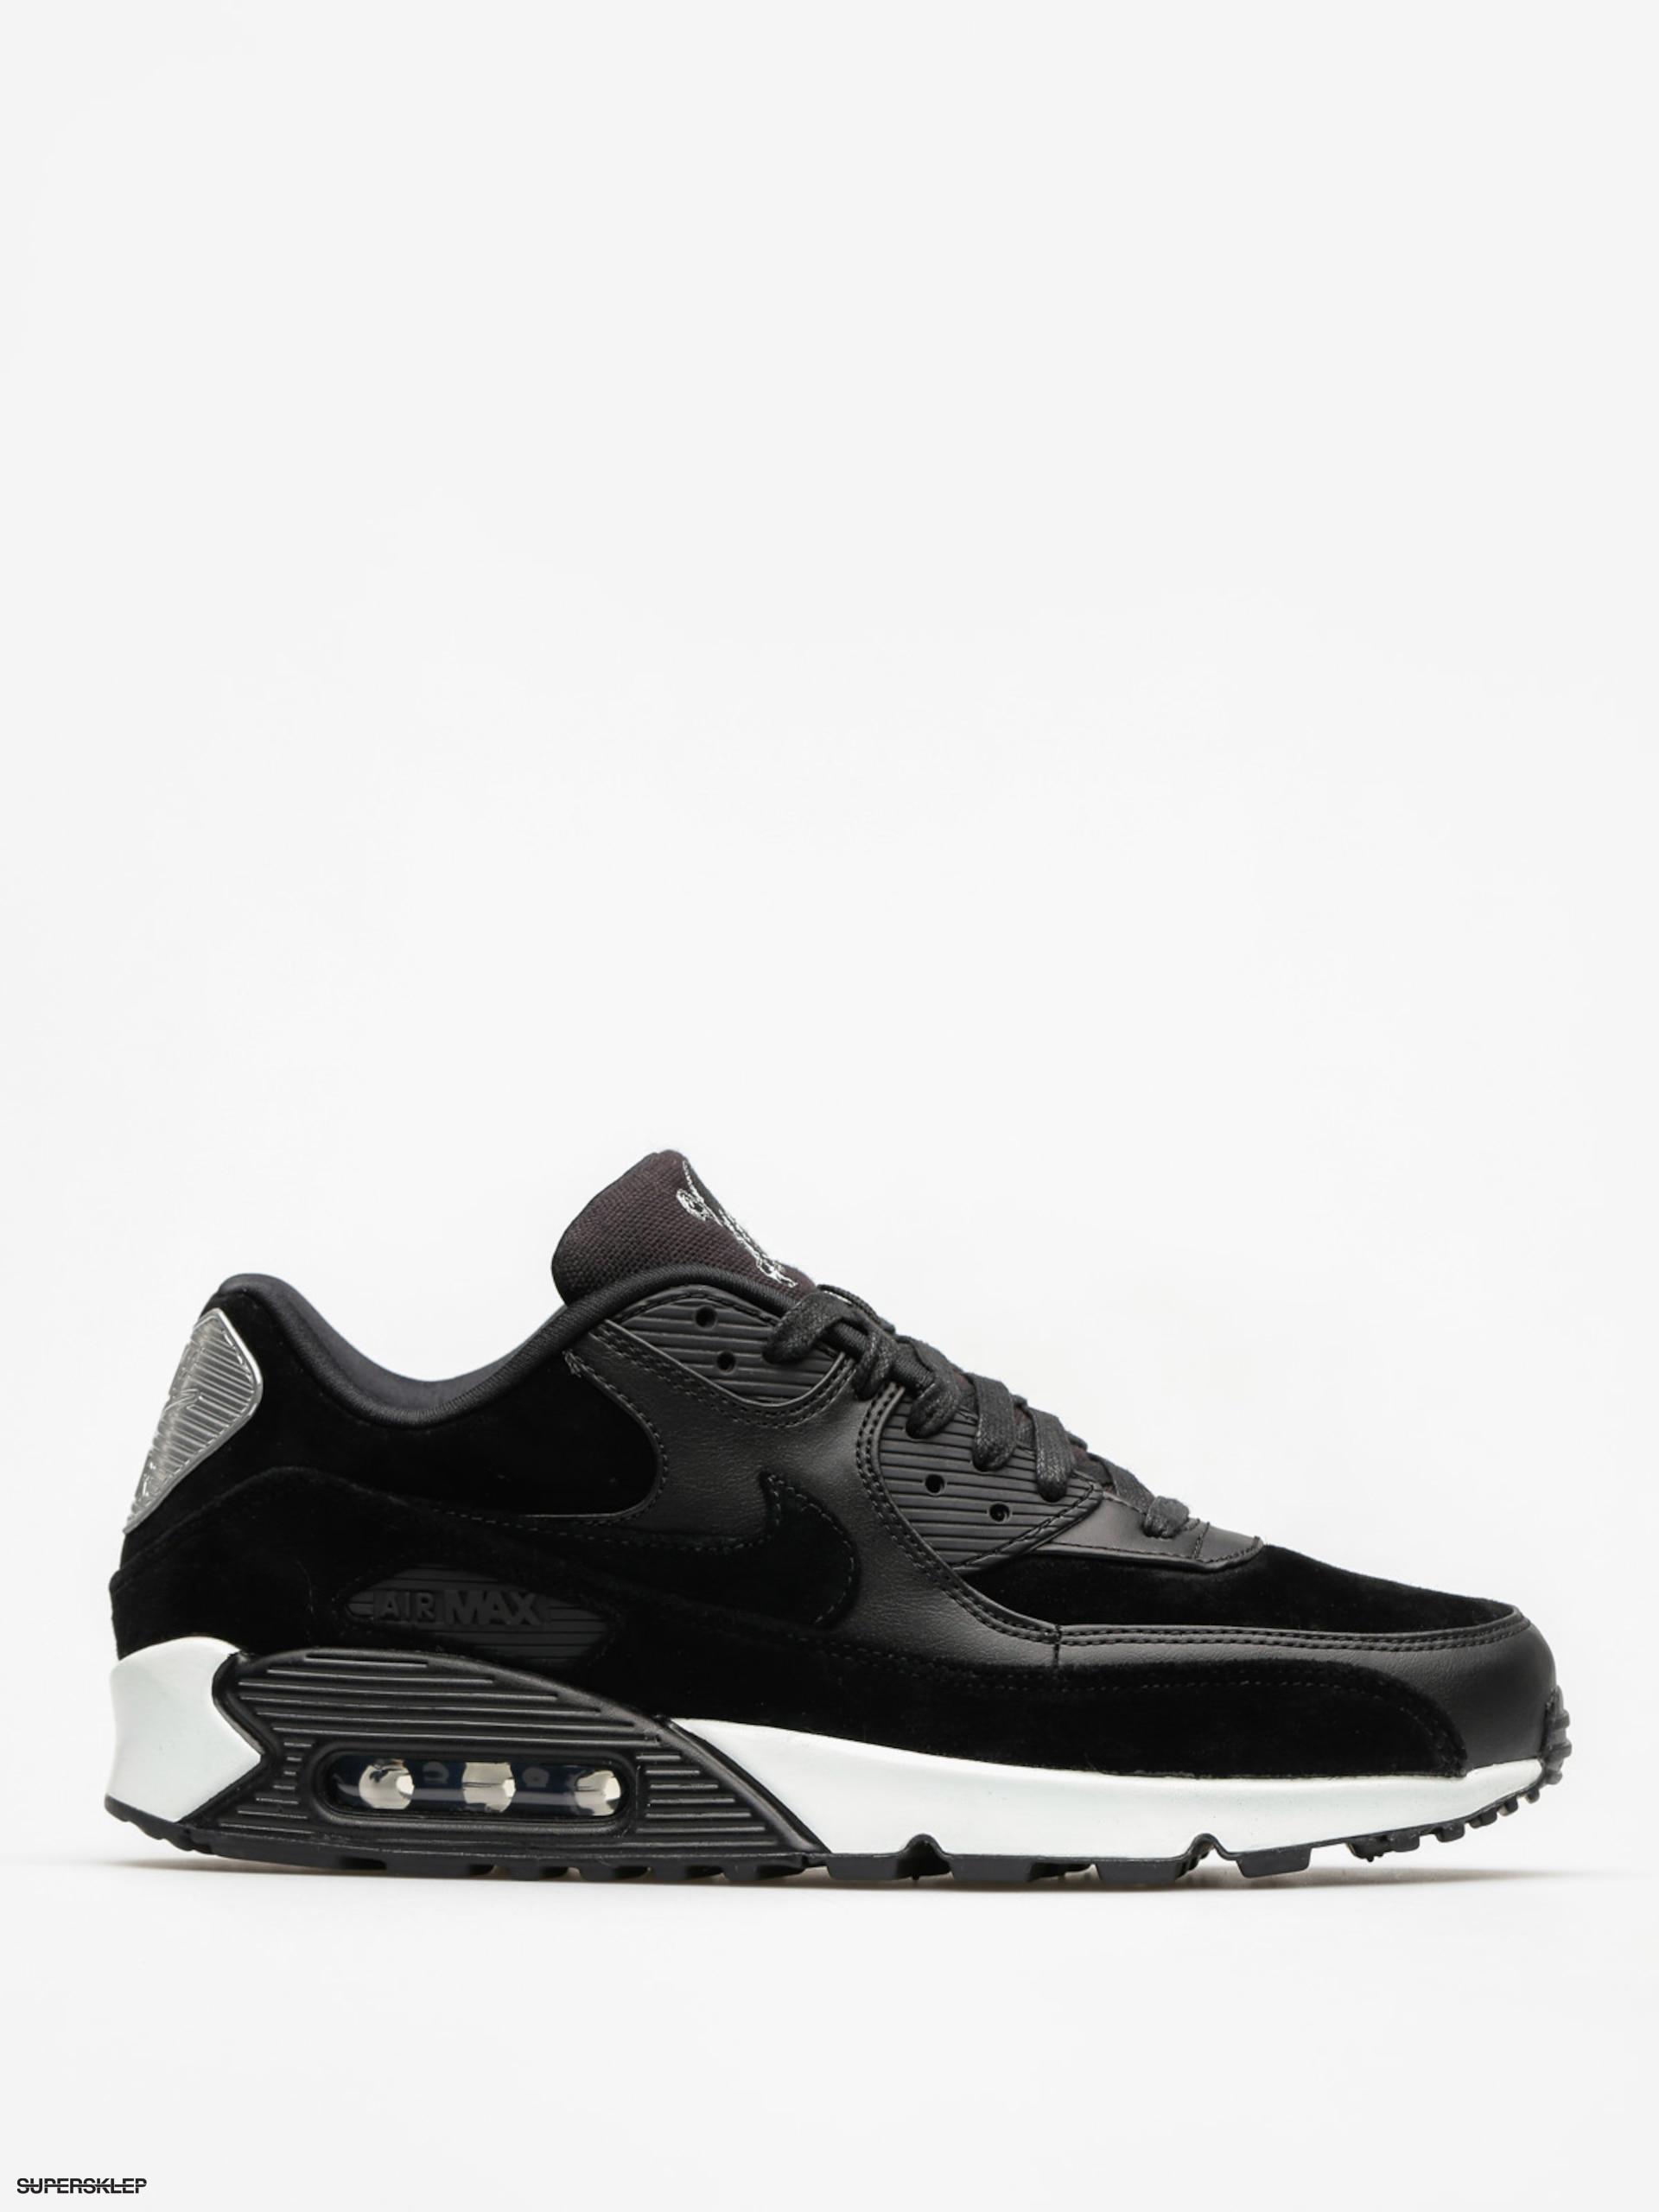 Boty Nike Air Max 90 (Premium black/black off white)